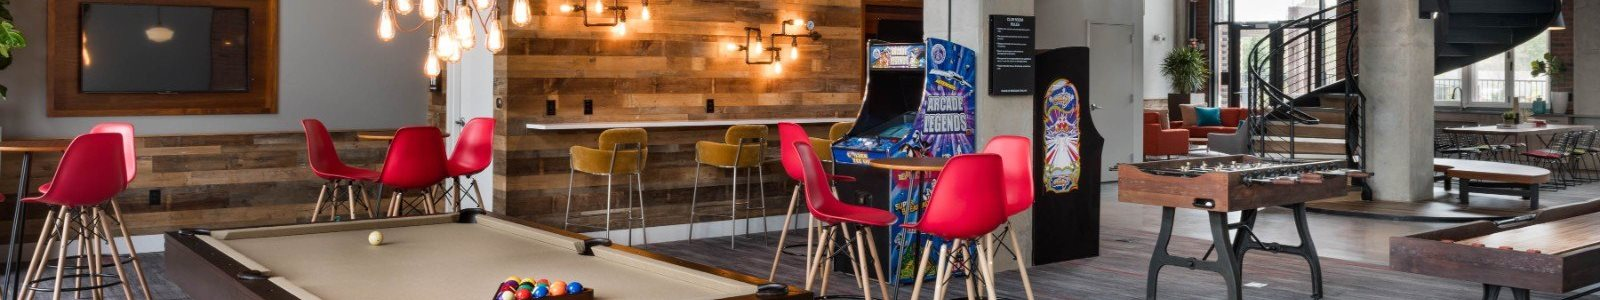 Clubhouse with Billiards Table Arcade Game With Red Bar Stools Shuffleboard Table and Foosball Table